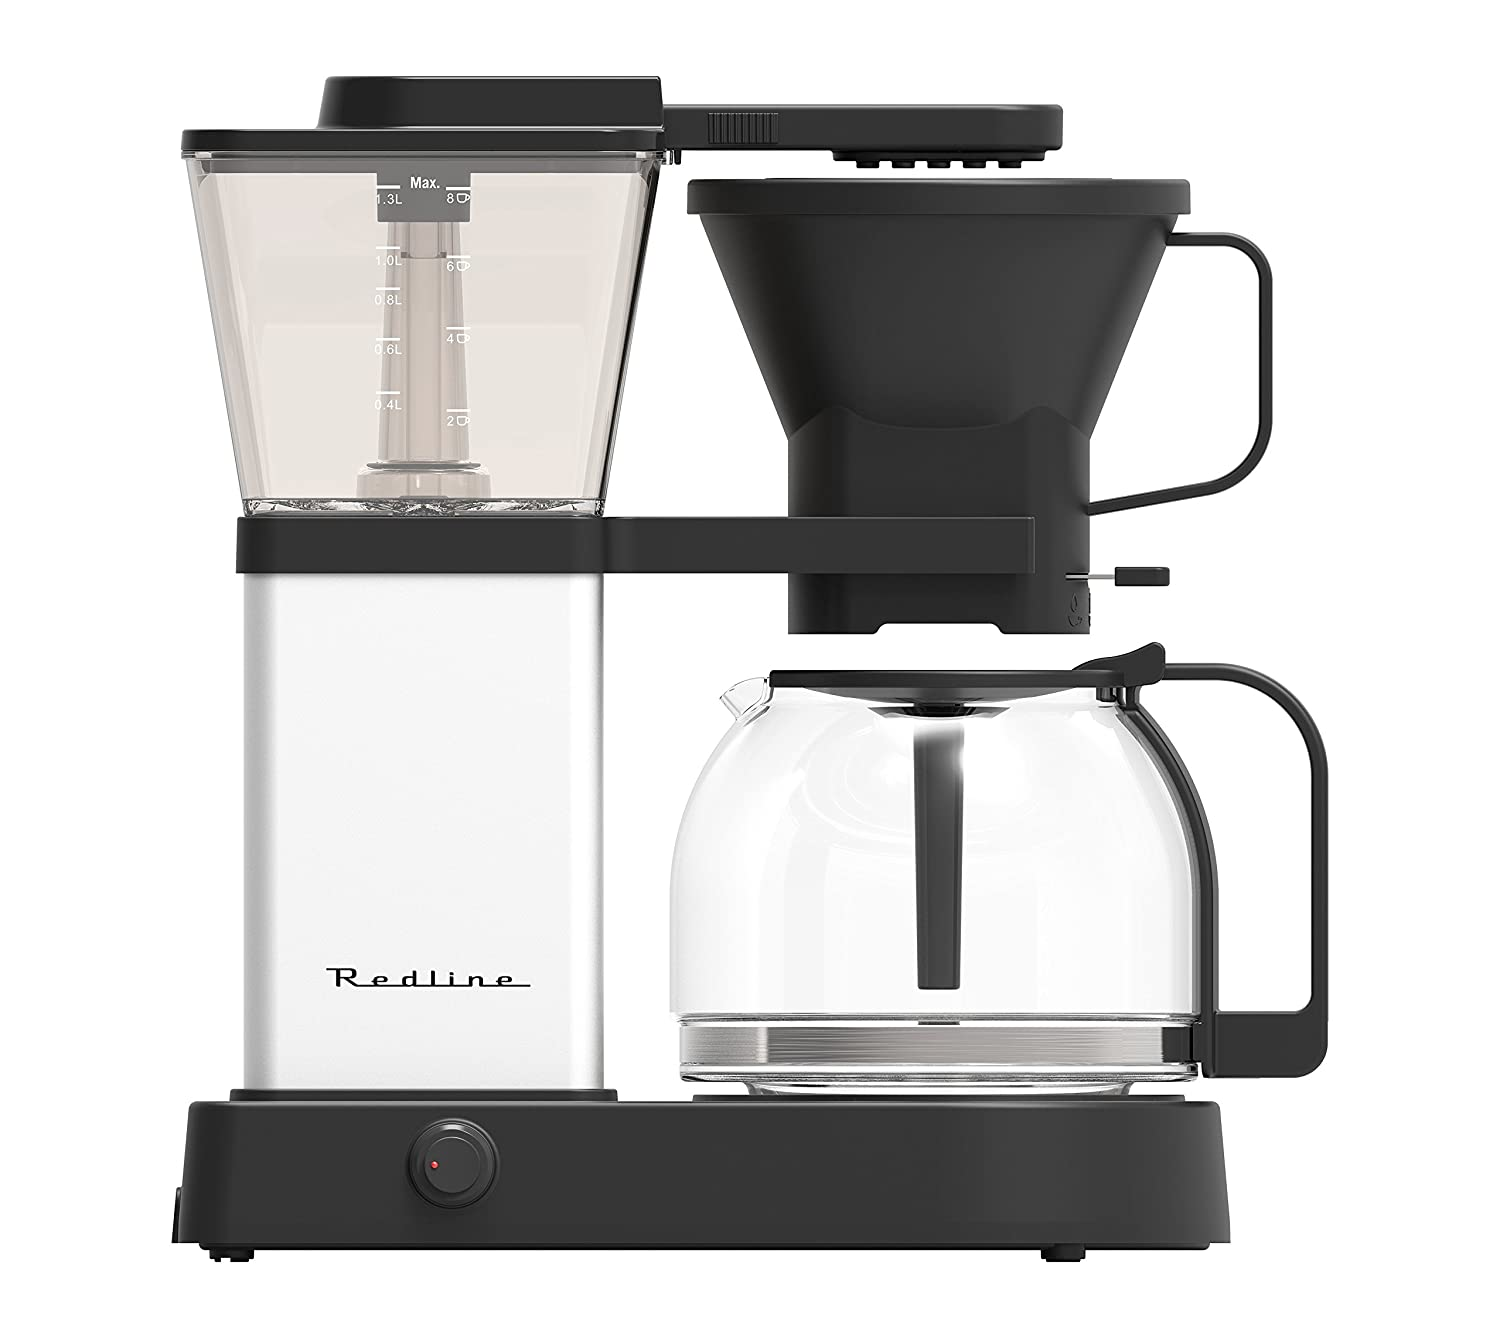 Redline MK1 8 Cup Coffee Brewer with Glass Carafe, Hot Plate and Pre-Infusion Mode (Summer 2018 Refresh) Redline Coffee